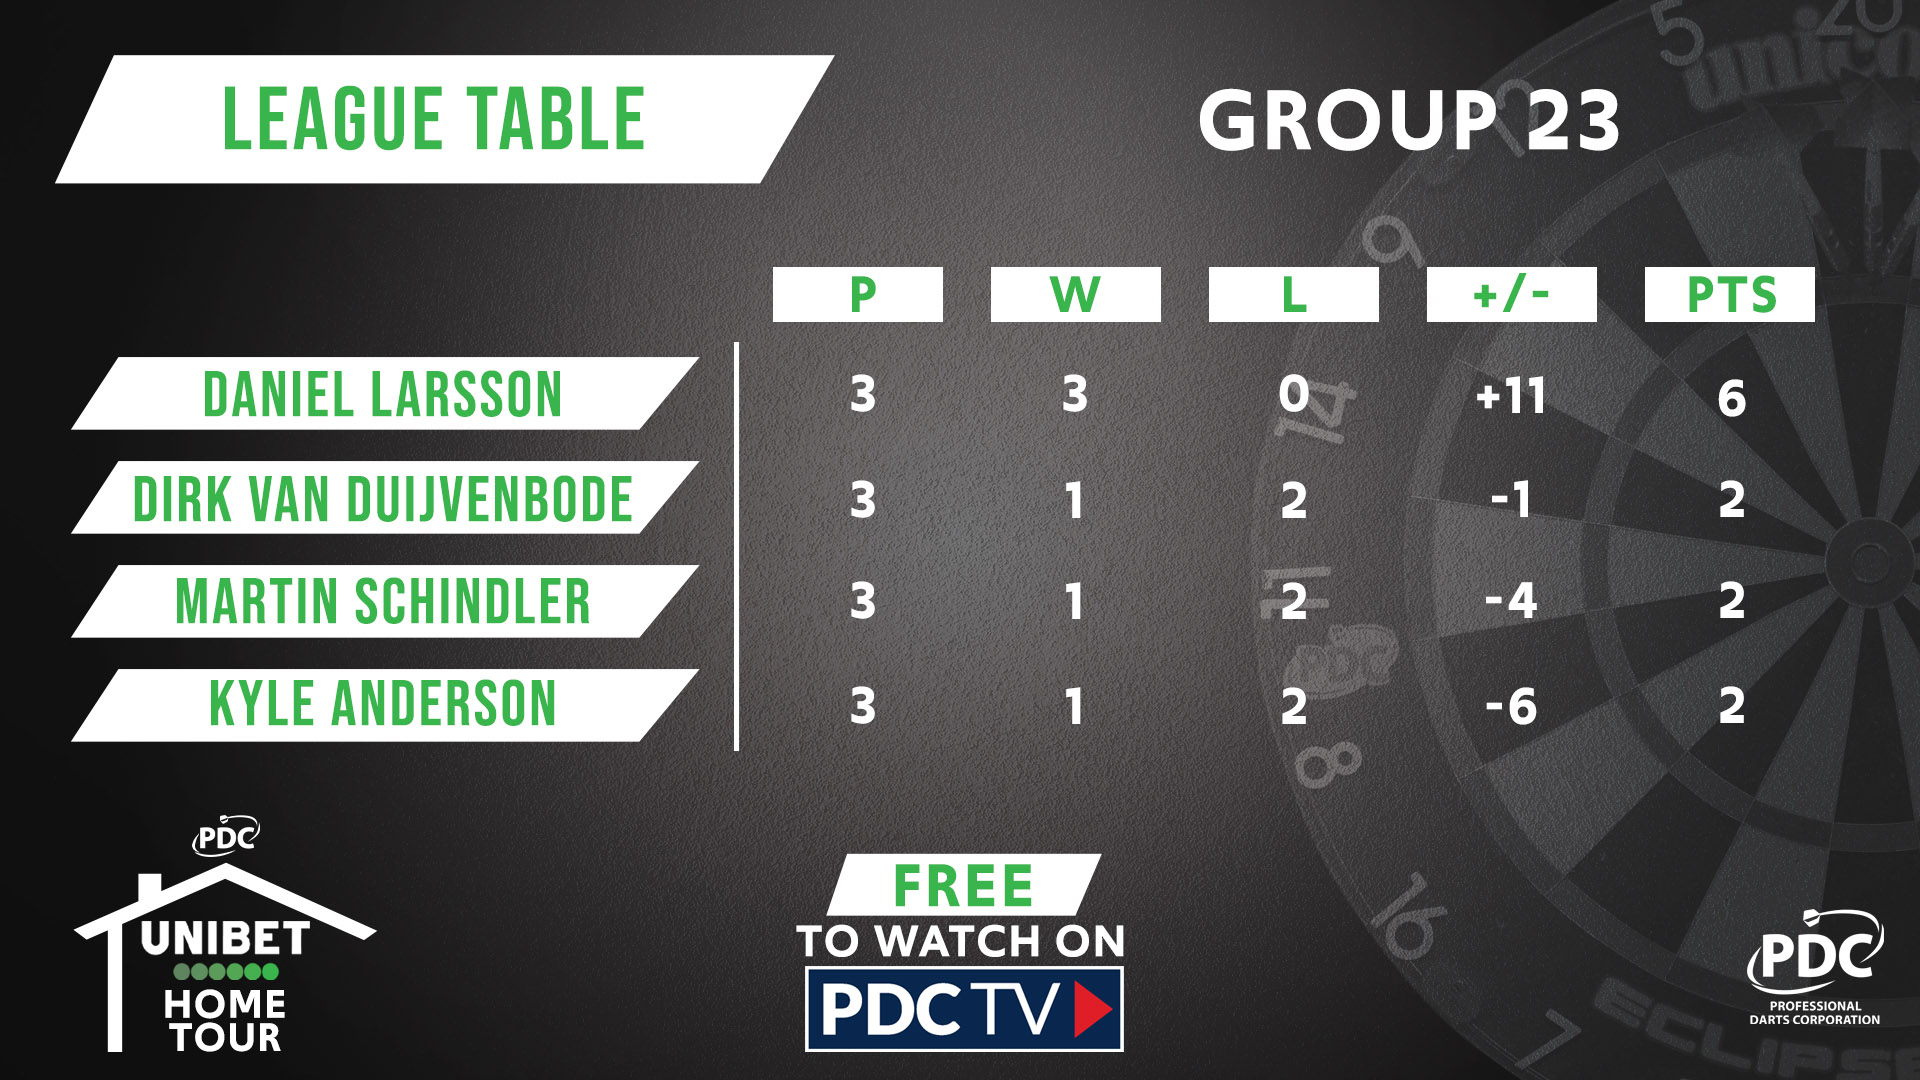 Group 23 table